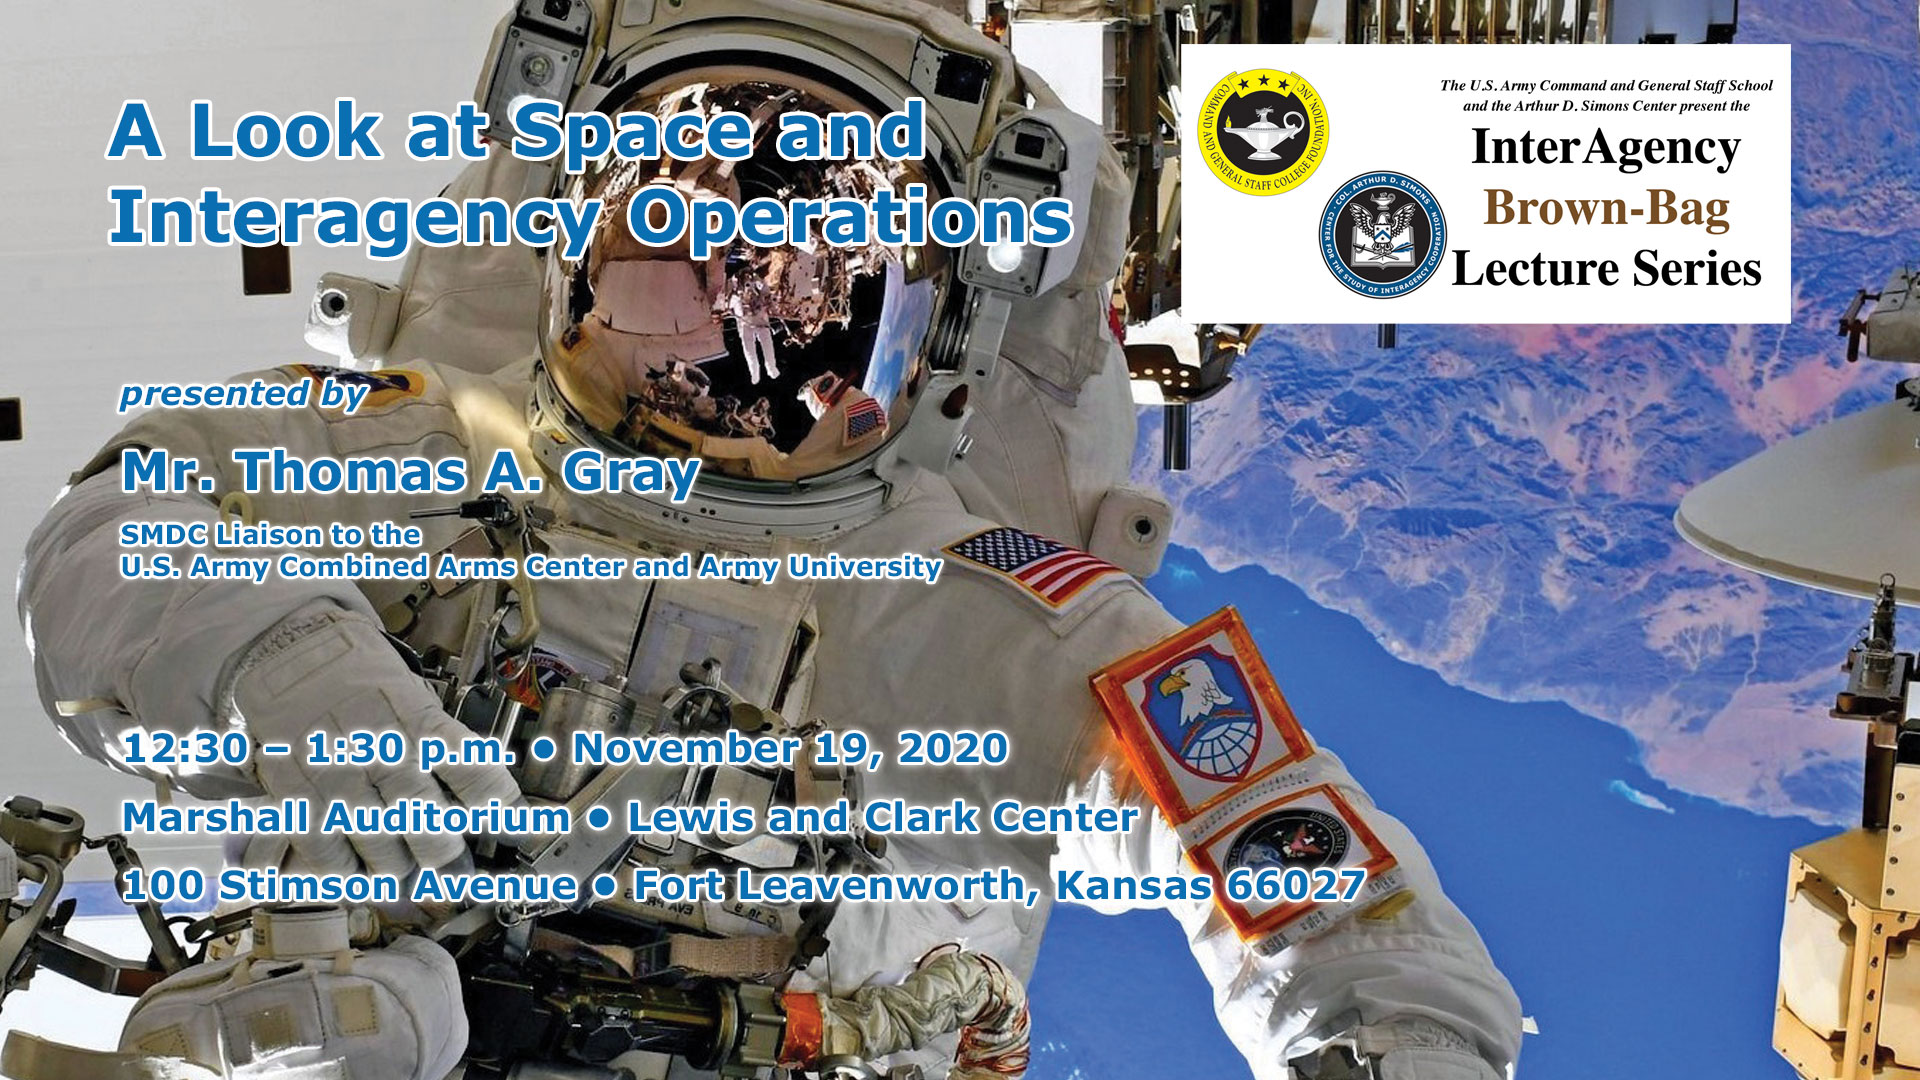 brown-bag lecture image with astronaut photo in the background and lecture date, time, location